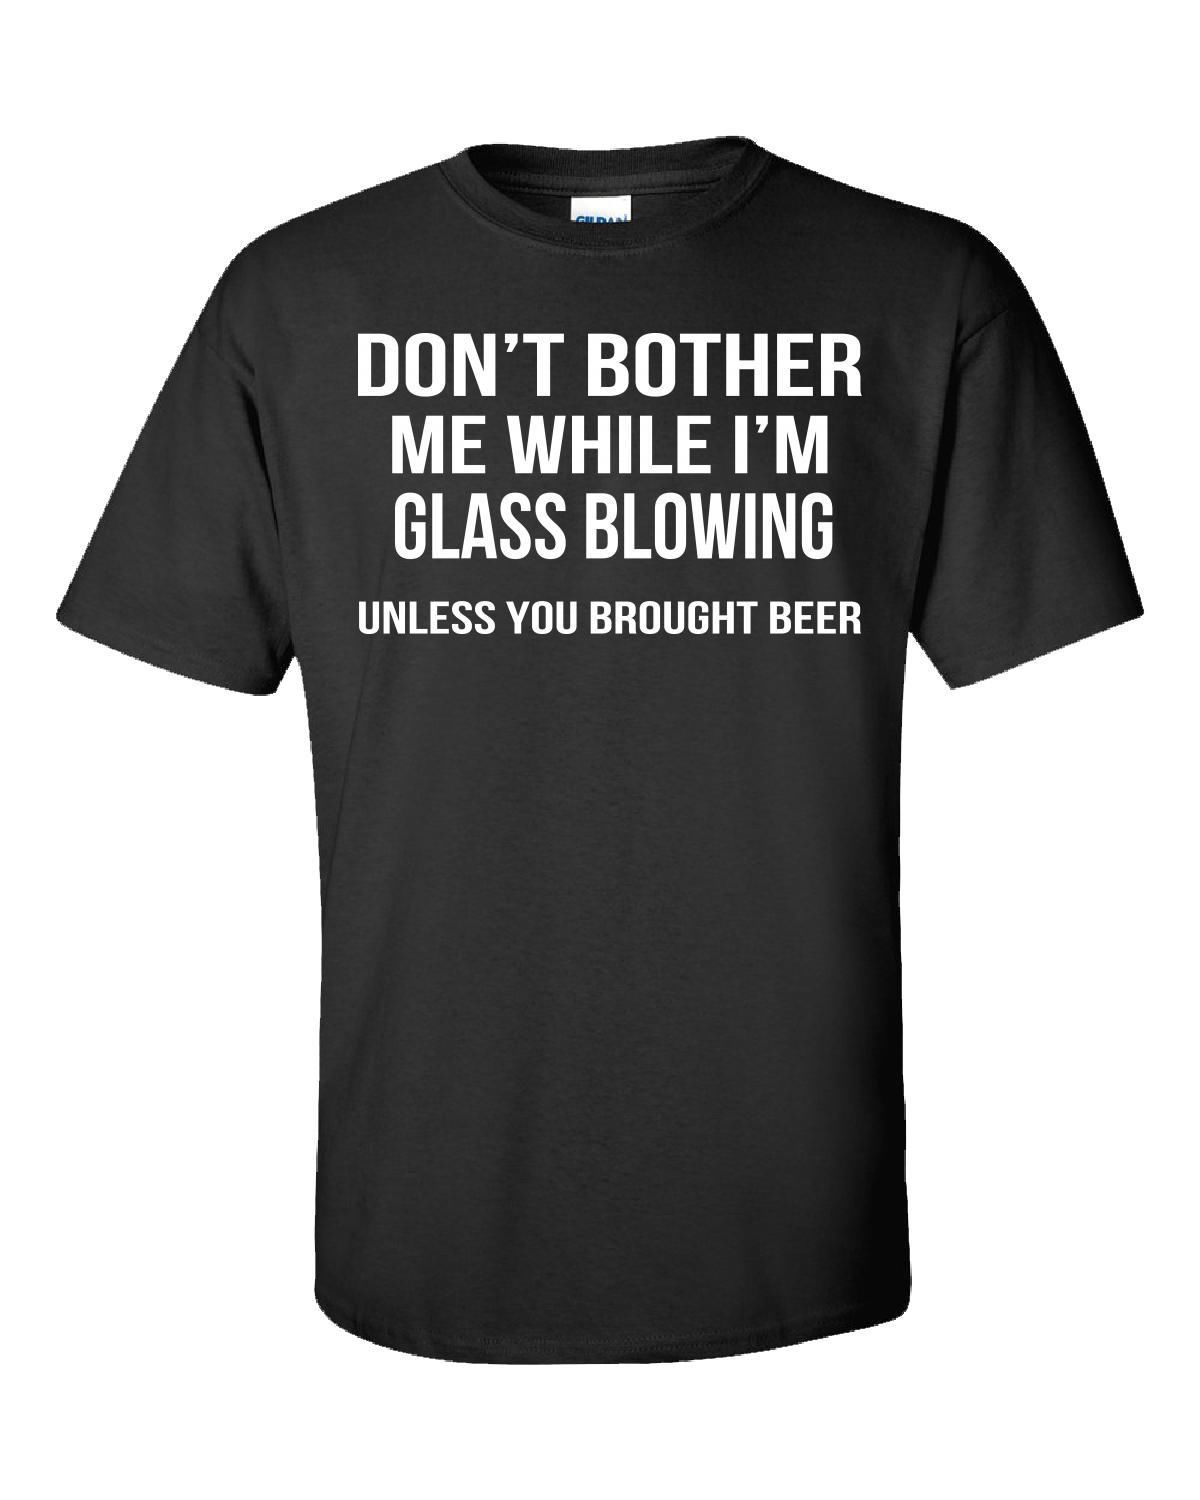 Glassblower.Info - Glassblowing T-Shirt tshirt - Dont bother me while I'm Glassblowing unless you brought beer